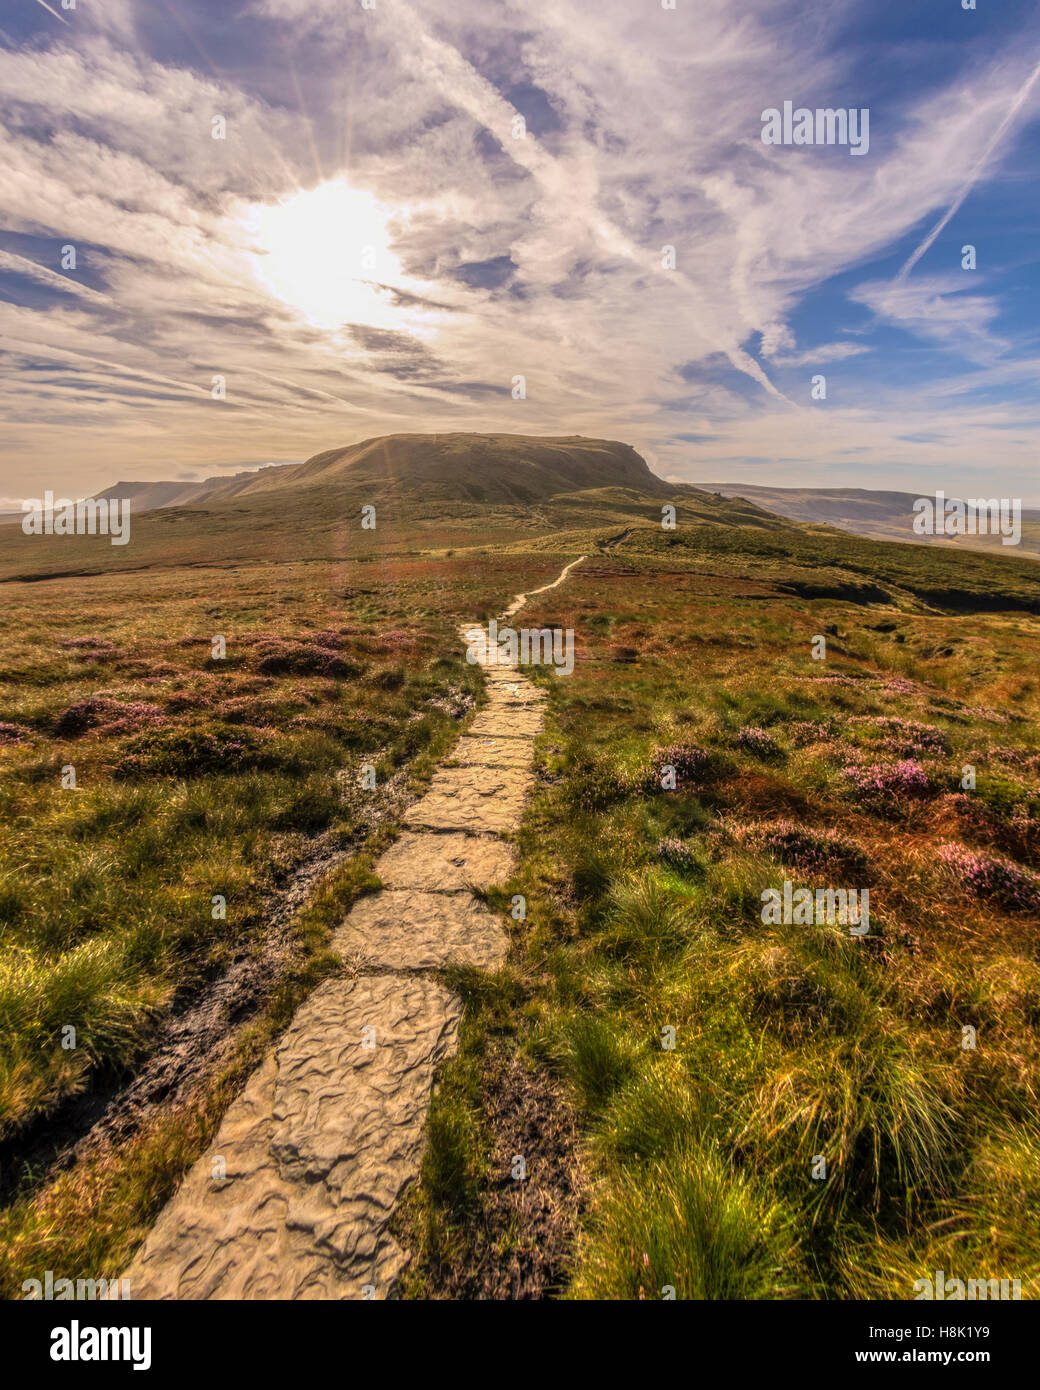 The Pennine Way - Stock Image